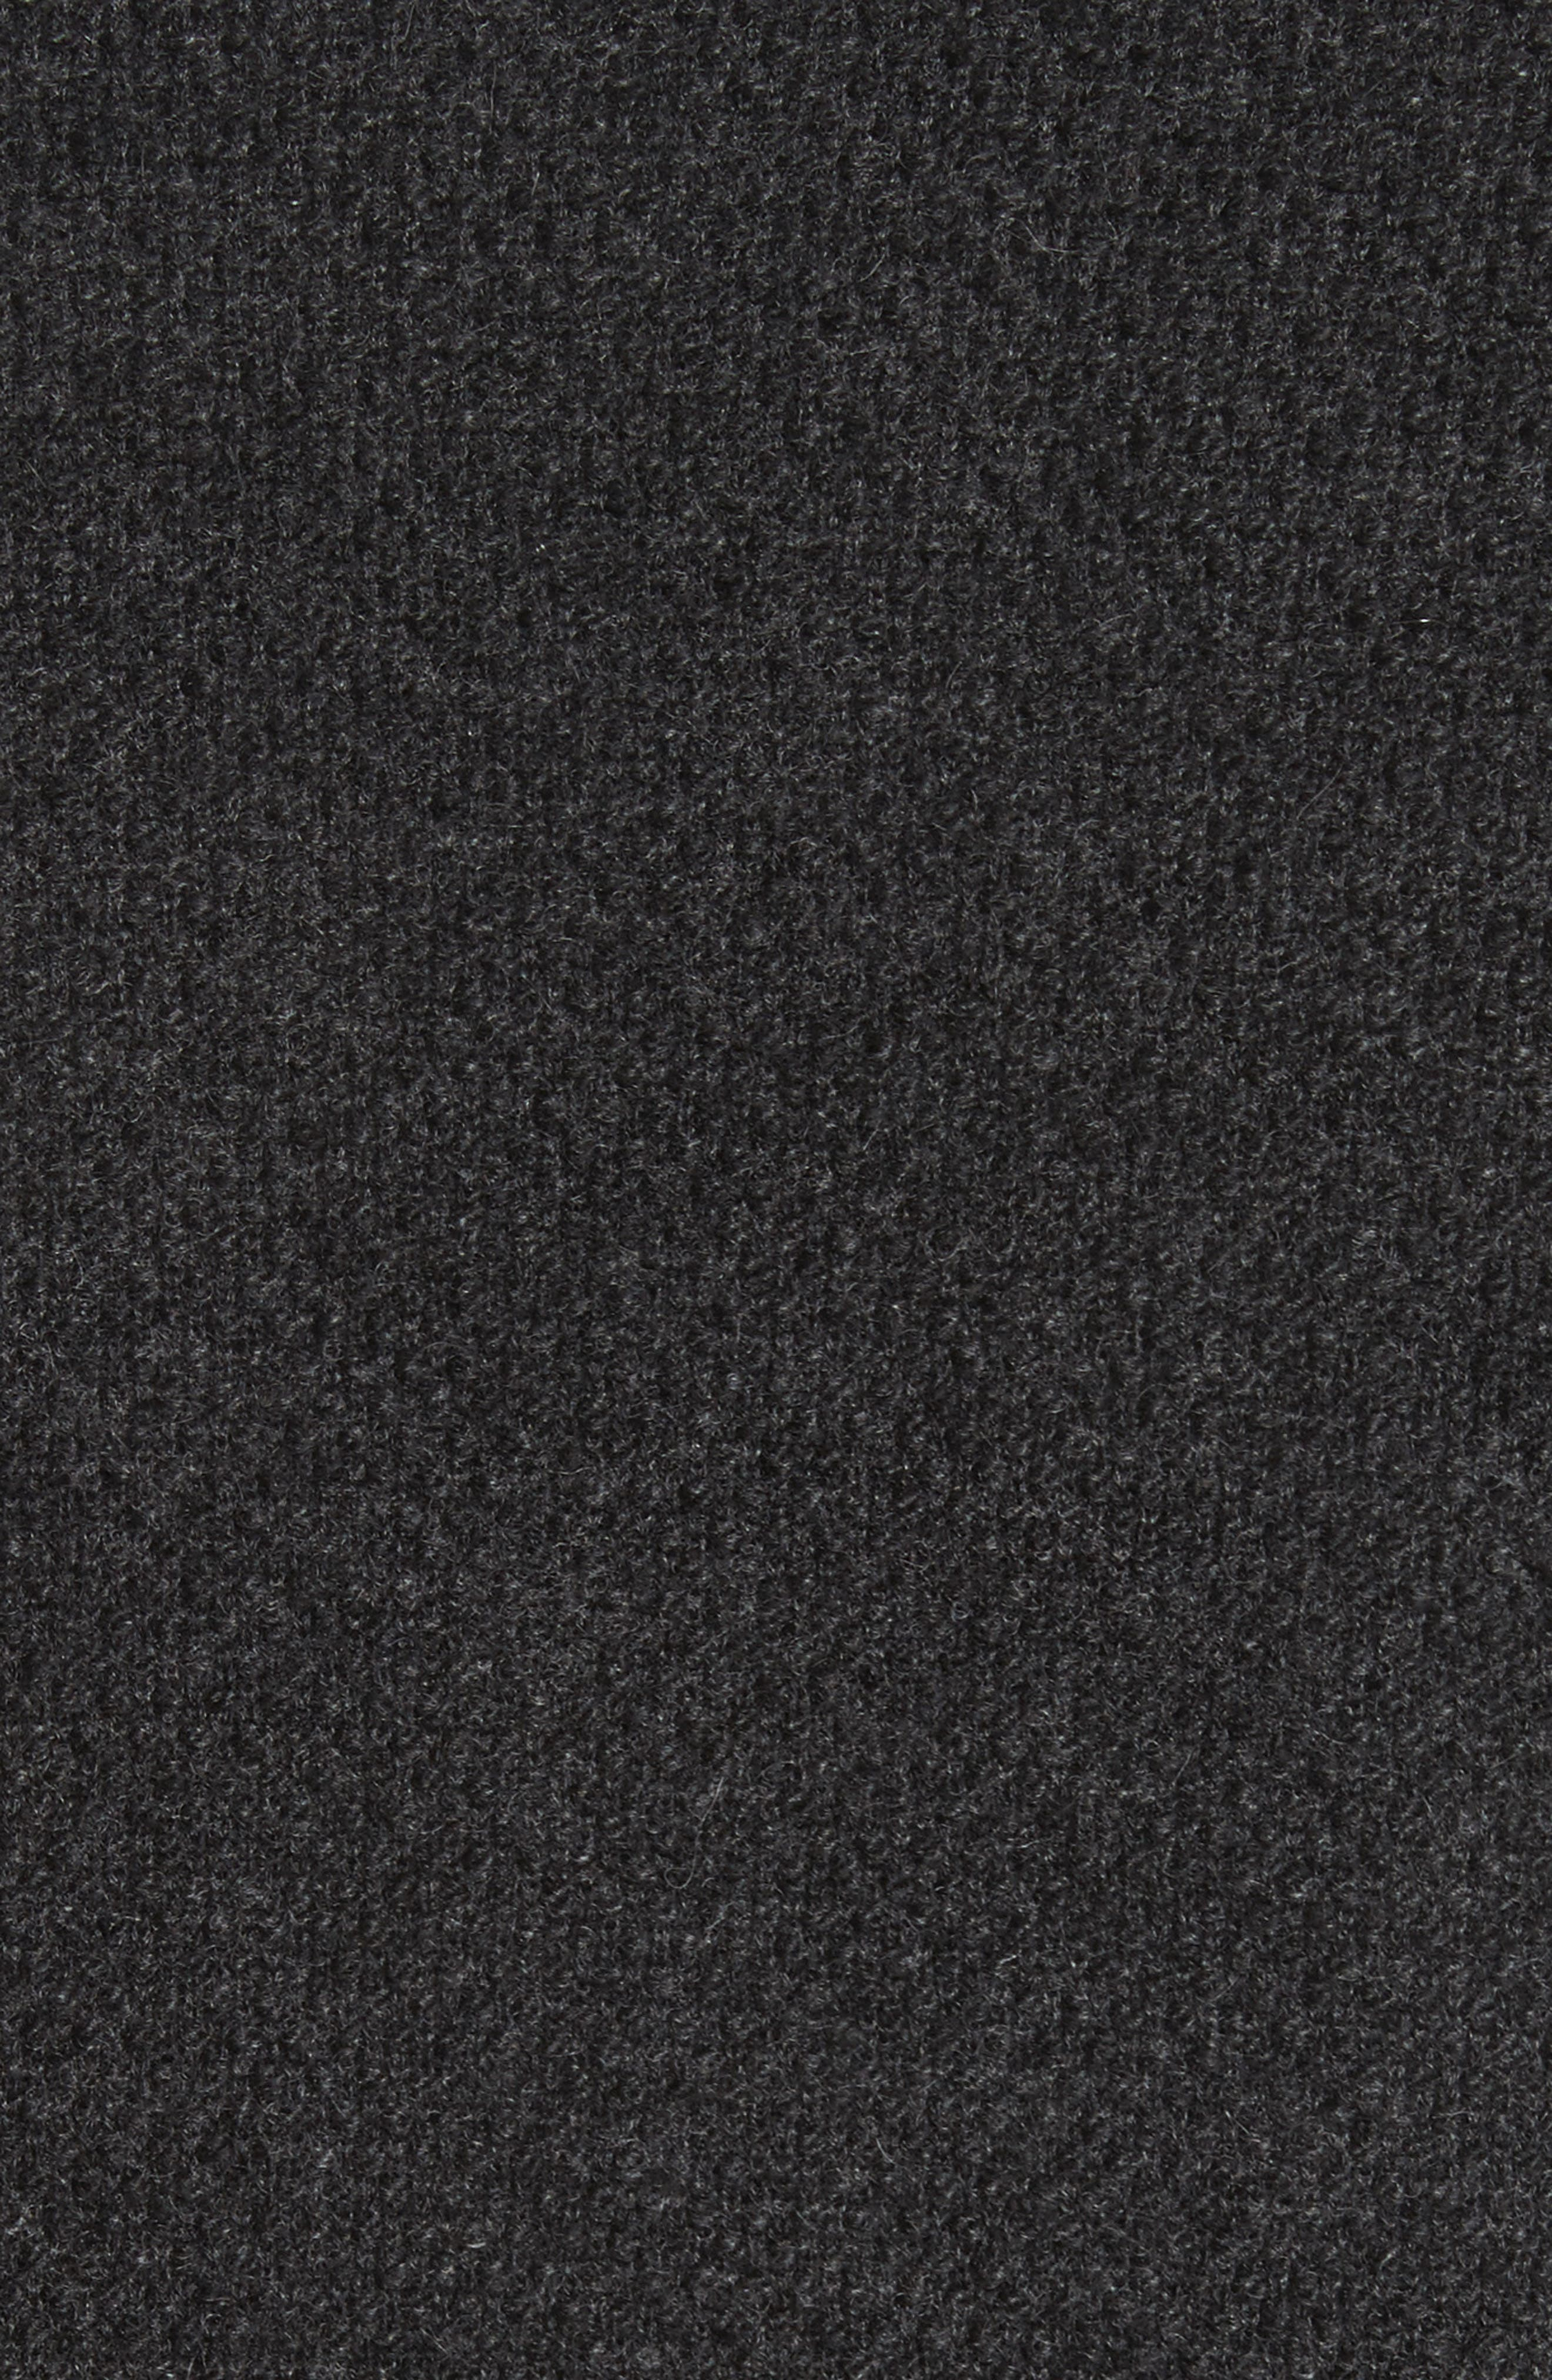 Cashmere Sweater Jacket,                             Alternate thumbnail 5, color,                             Anthracite